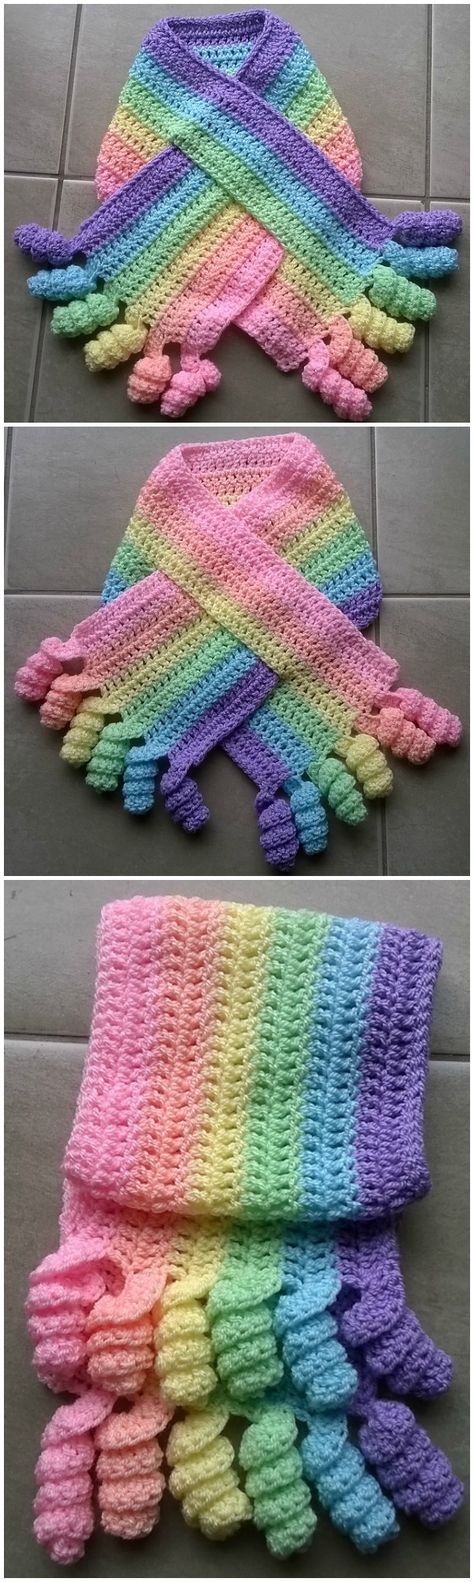 Such a delightful looking Crochet Baby Scarf! Love it! | Crocheted ...